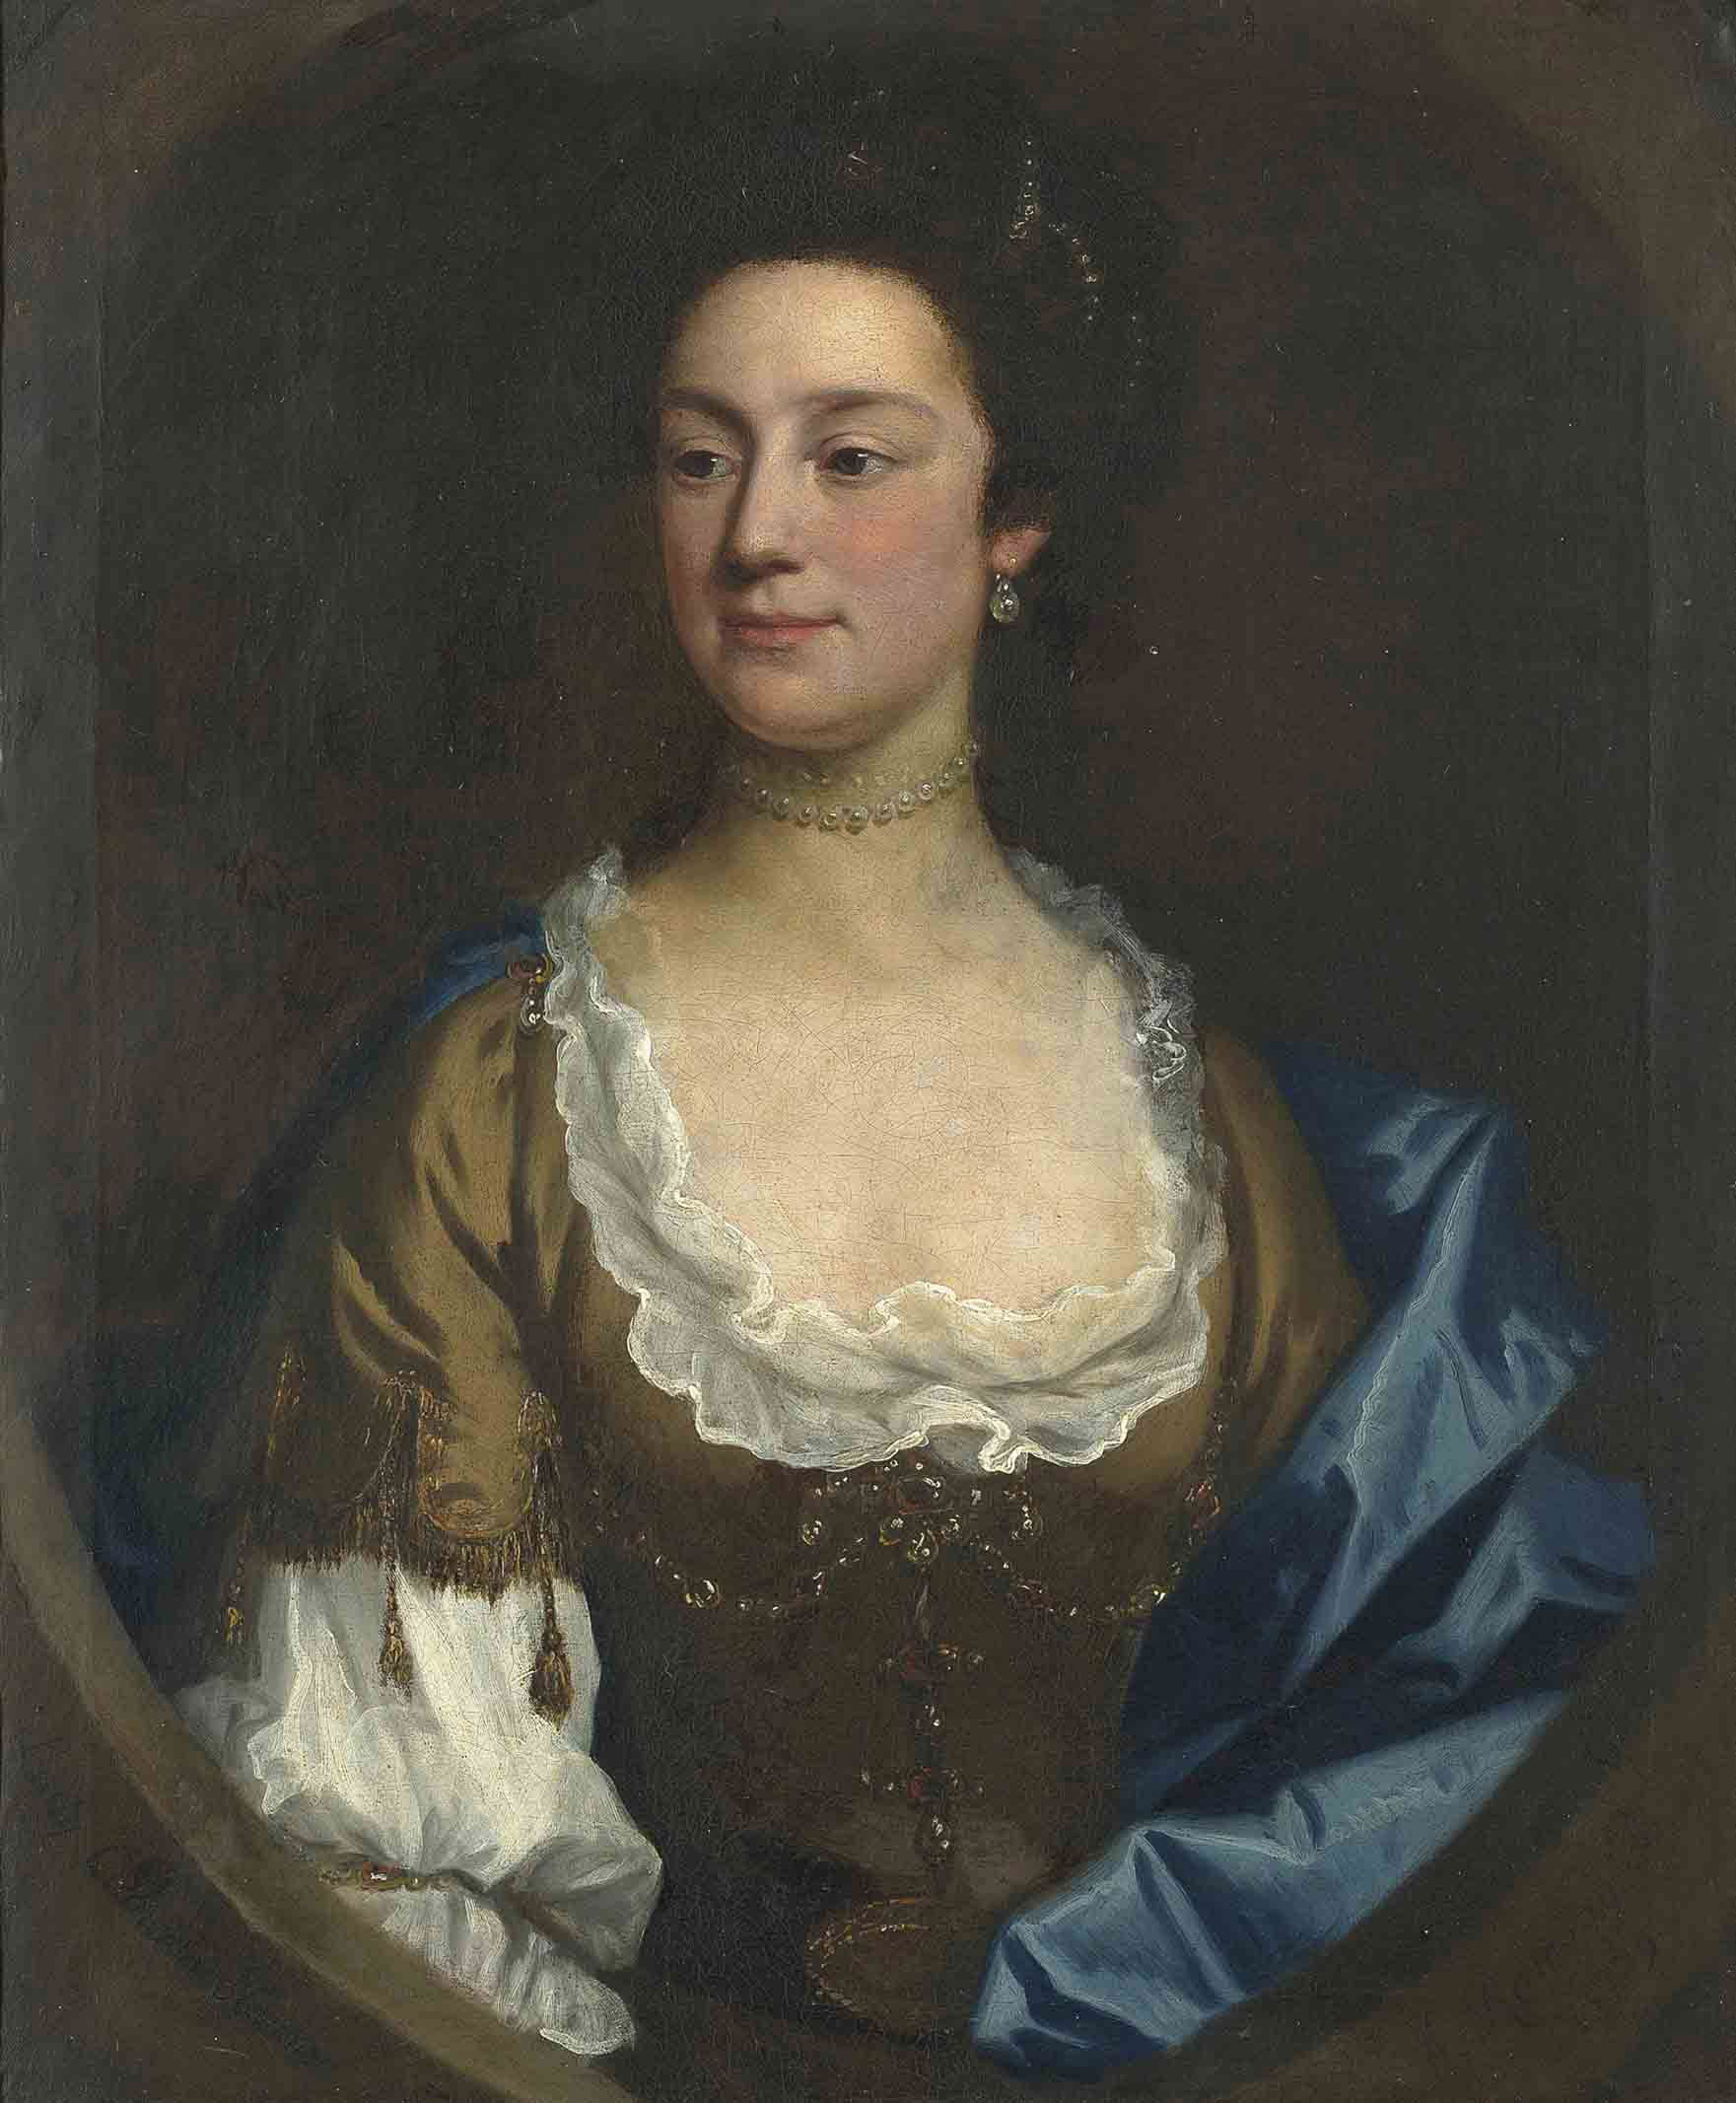 Portrait of Lady Catherine Hanmer, bust-length, in a brown decollété dress and shawl, with a pearl necklace, in a feigned oval